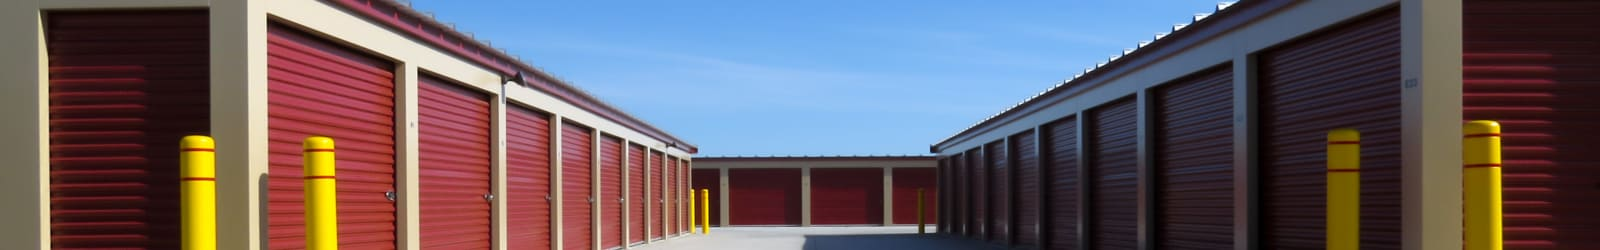 Self Storage in Pflugerville, TX